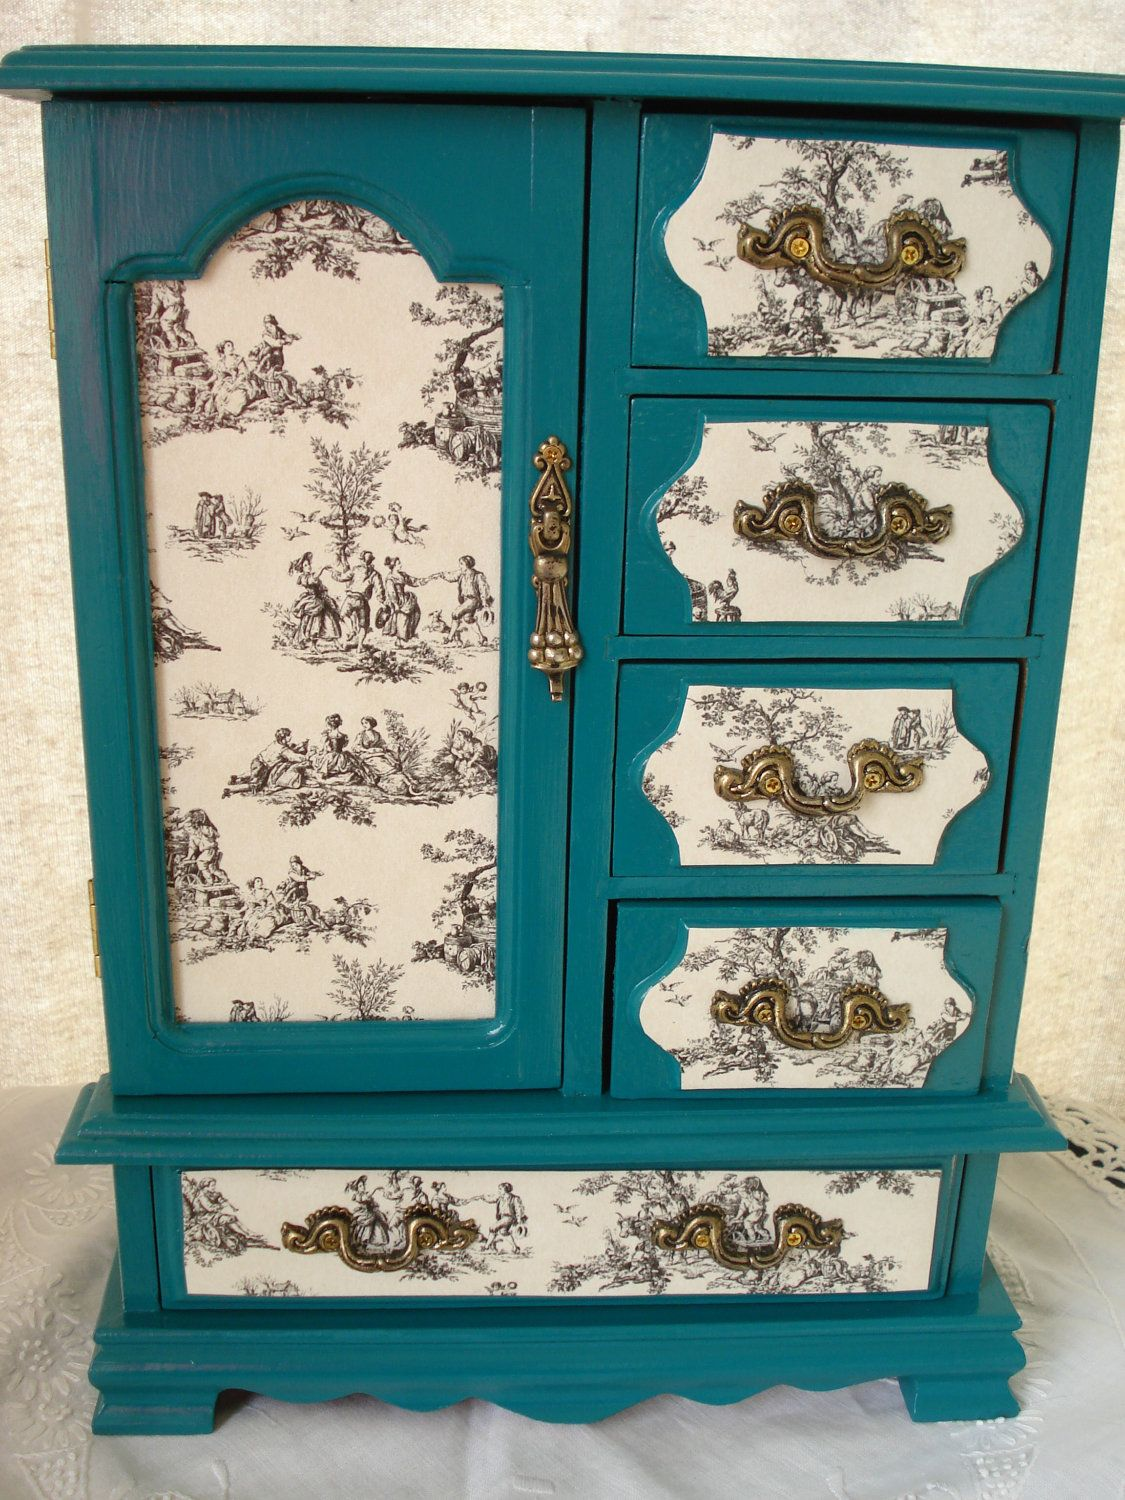 Vintage Hand Painted And Decoupaged Teal Toile Upcycled Jewelry Box